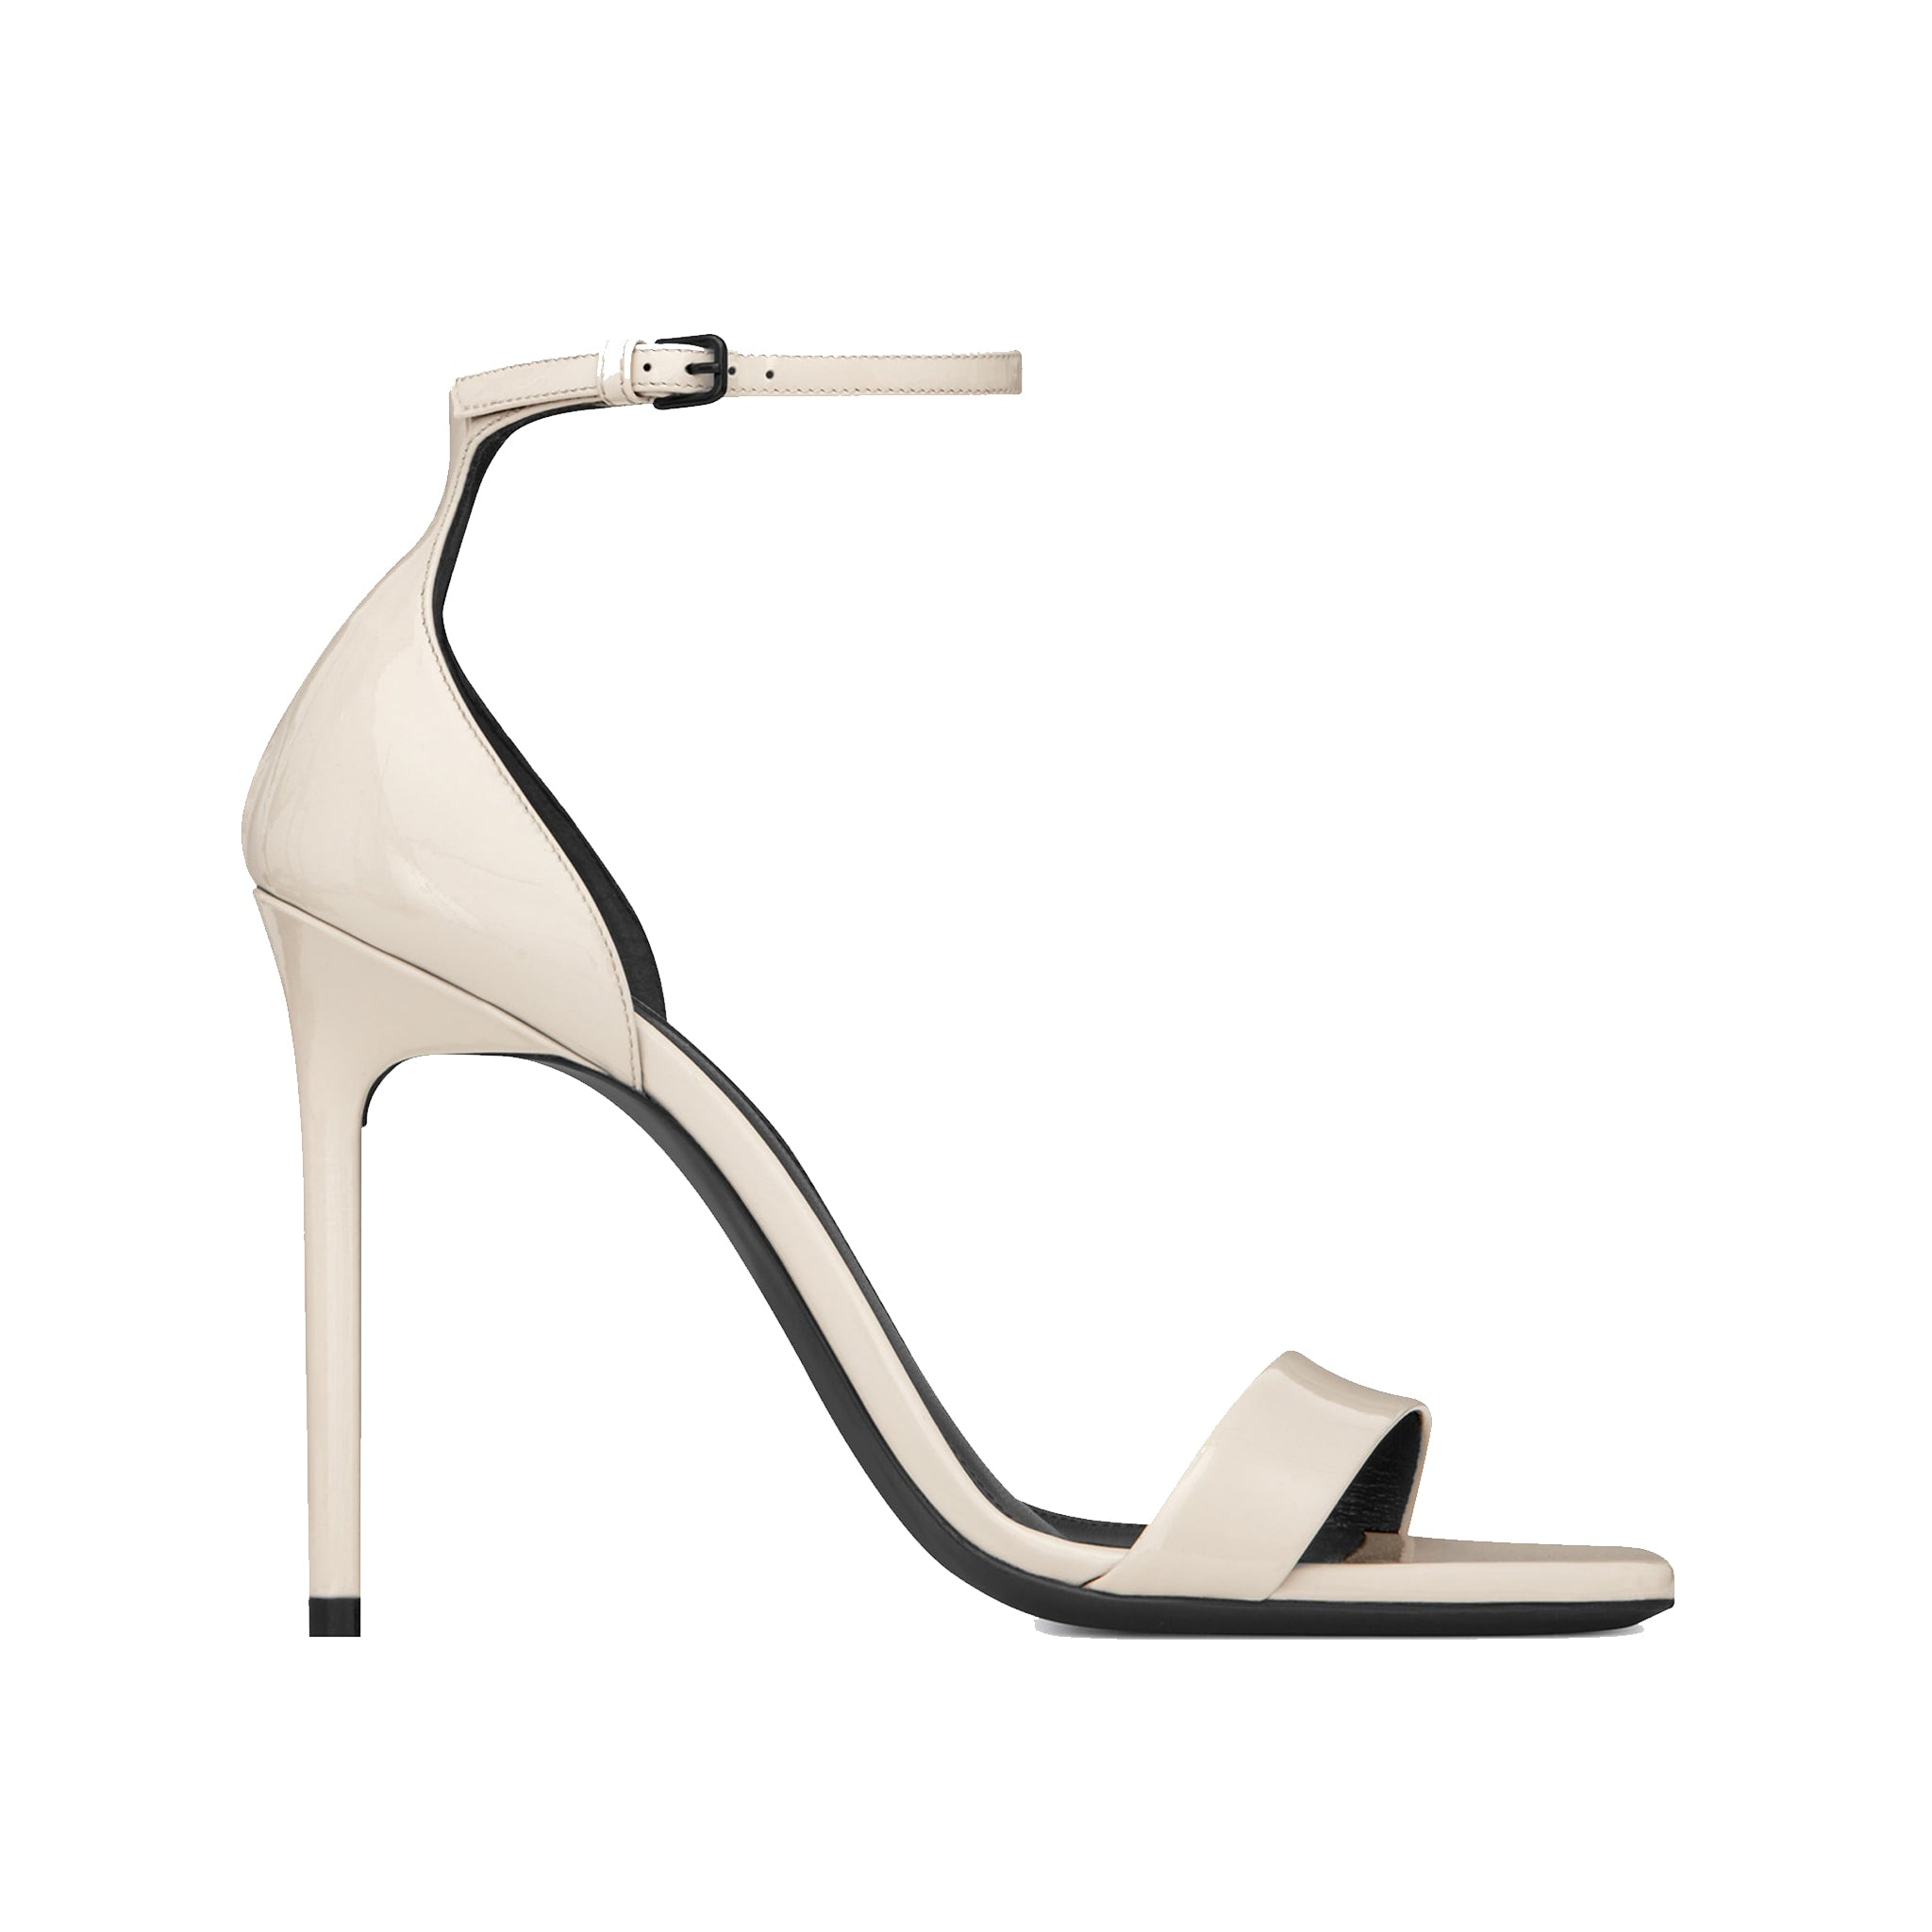 Saint Laurent Amber Patent Leather Sandals